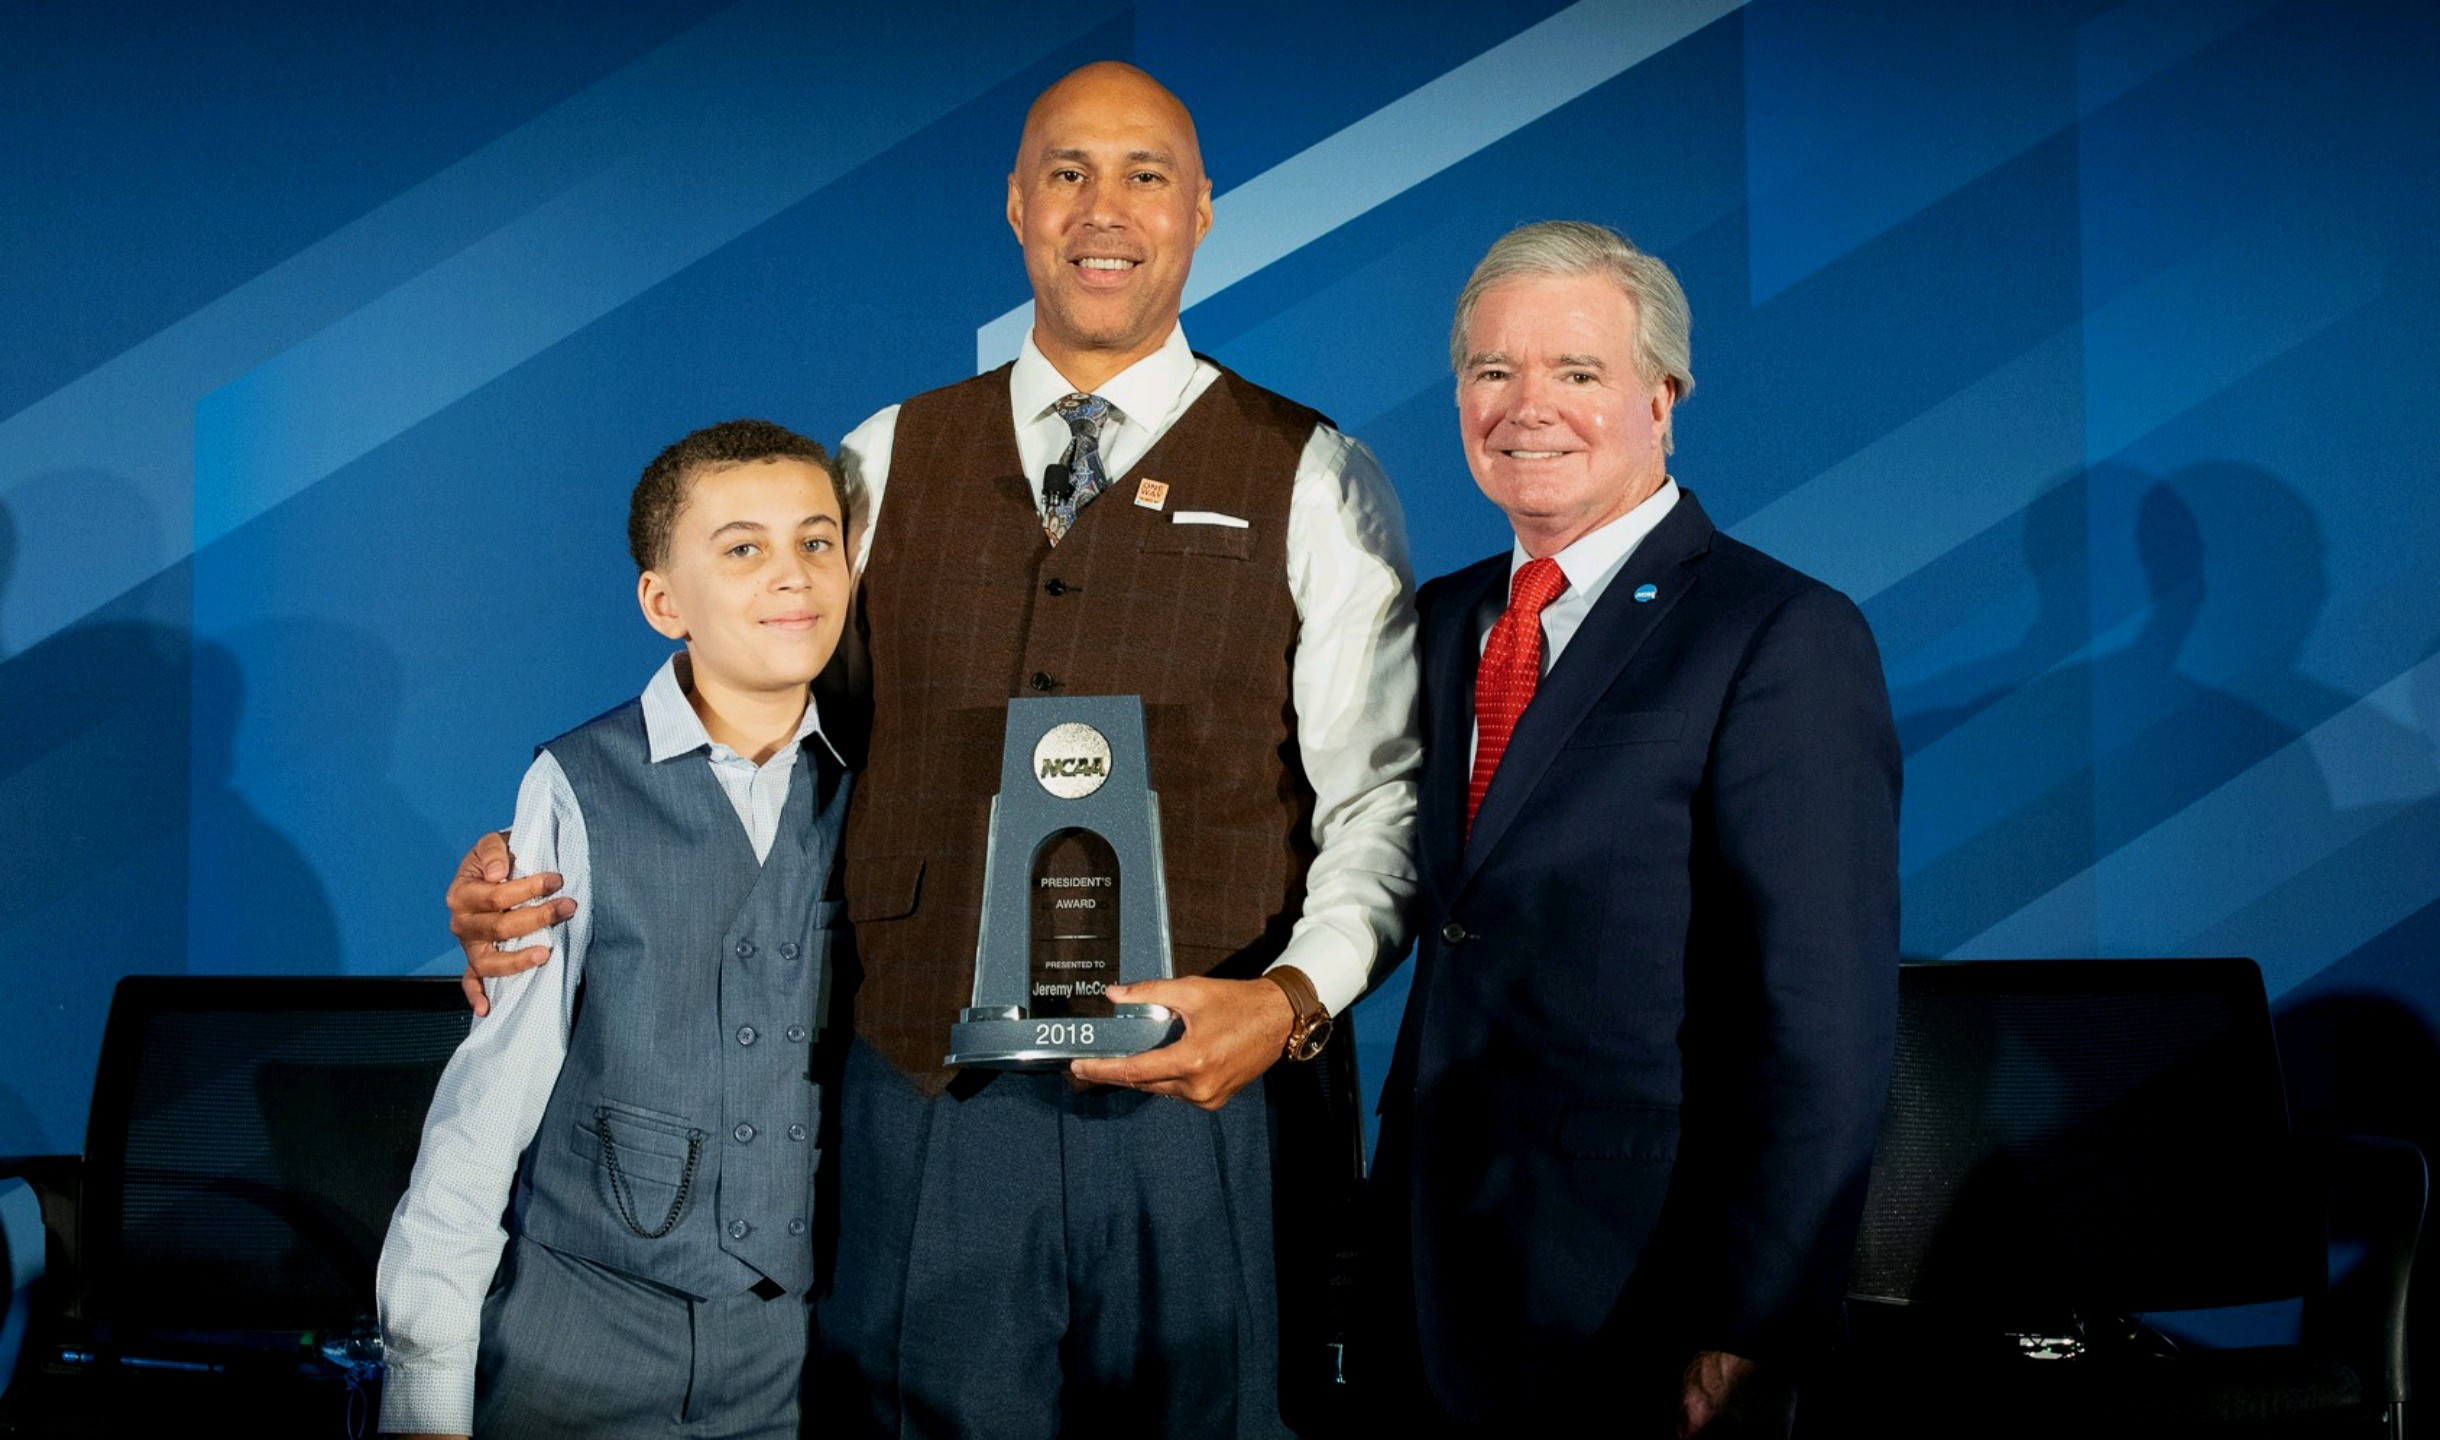 Jeremy McCool his son and Mark Emmert